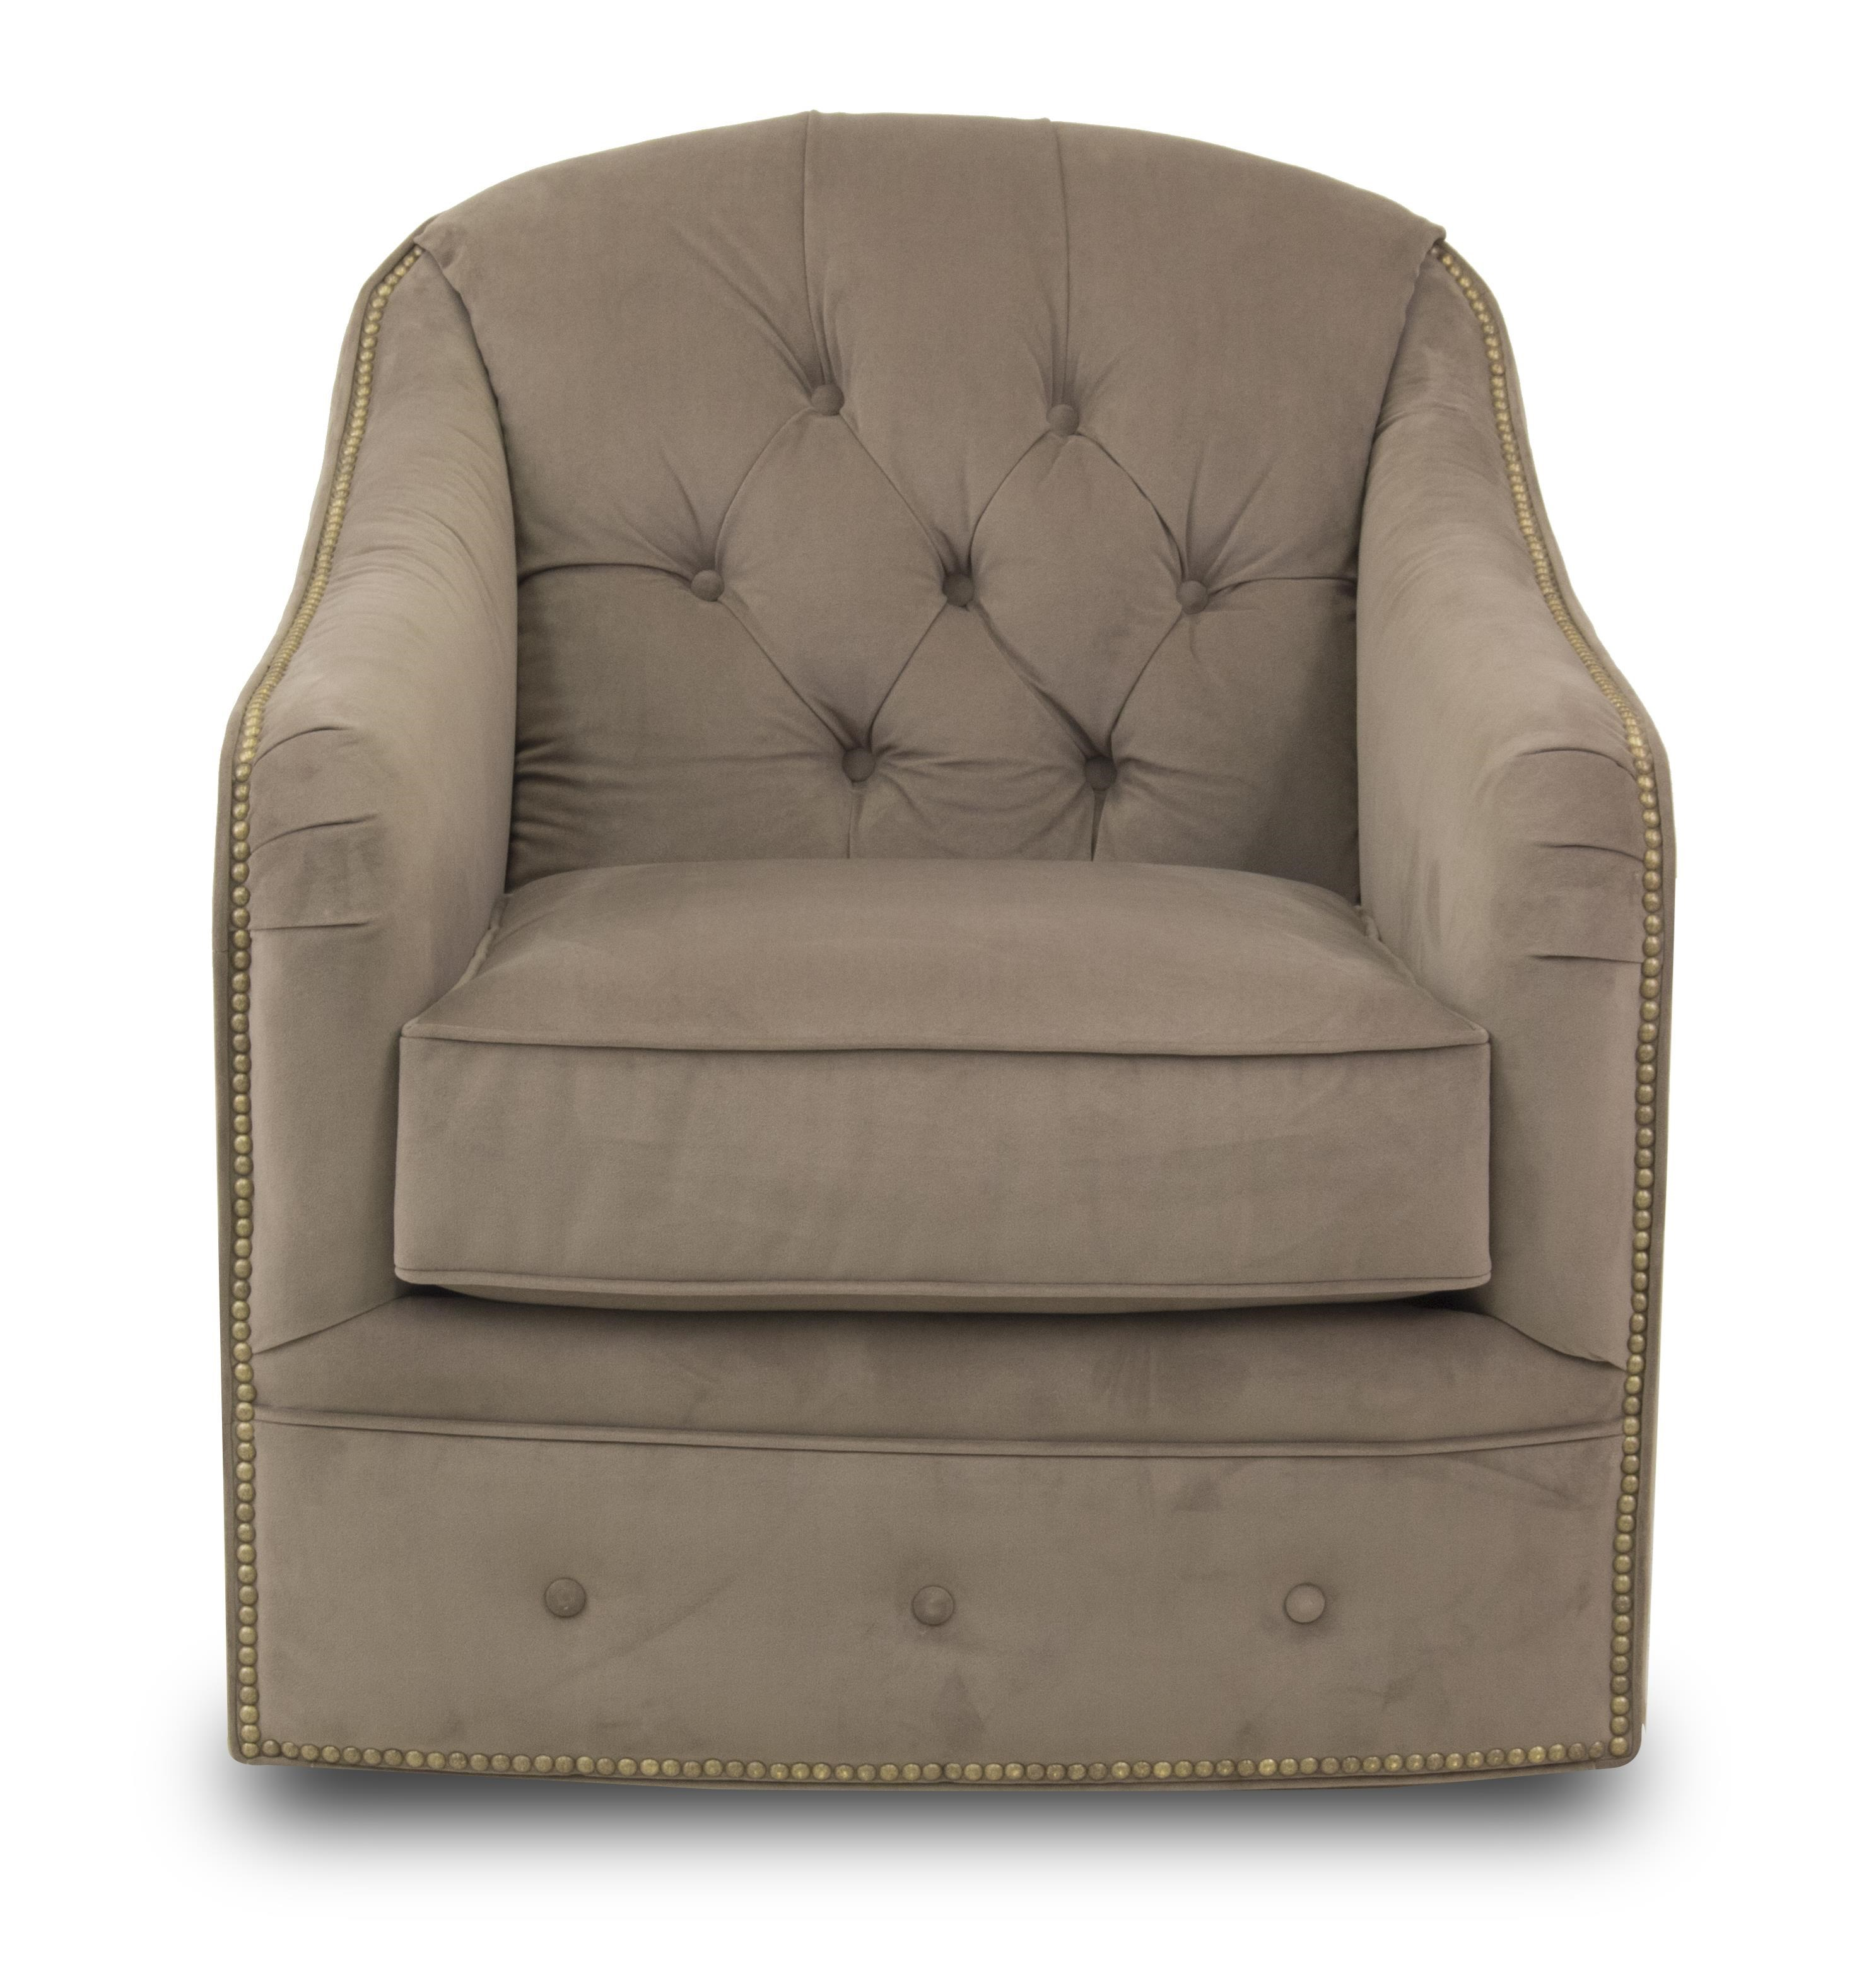 Flexsteel Champion Transitinal Button Tufted Chair With Rolled Arms And  Nailheads | Ruby Gordon Home | Upholstered Chairs